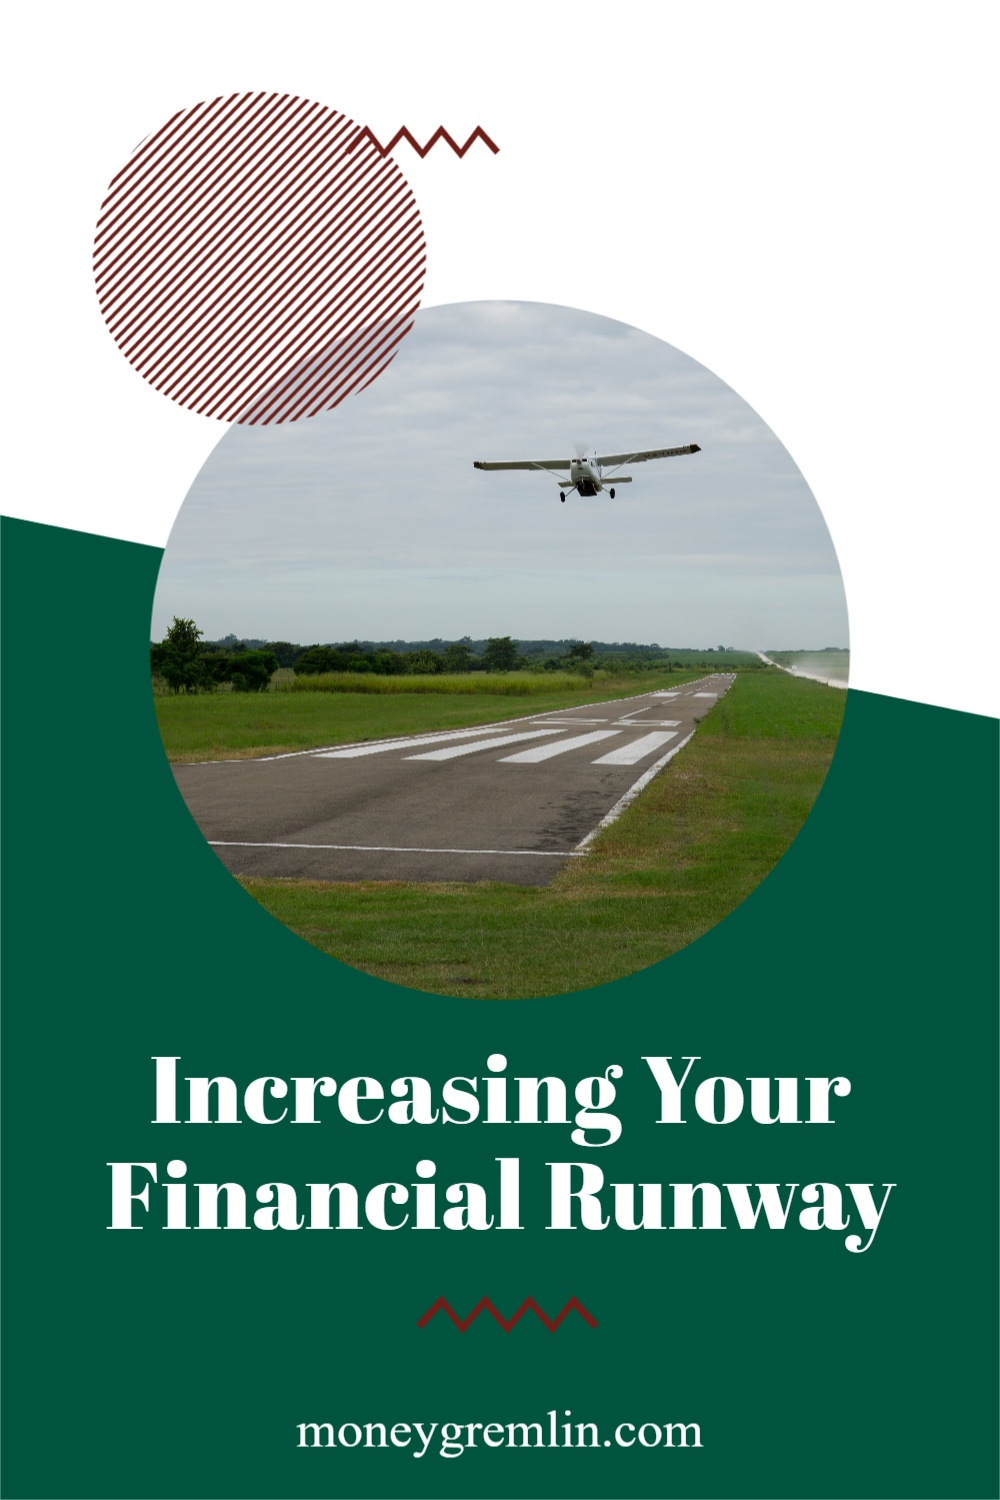 There's a frustrating aspect to getting out of debt: it takes time. The concept of increasing your financial runway helps me stay positive and motivated on the journey. via @moneygremlin